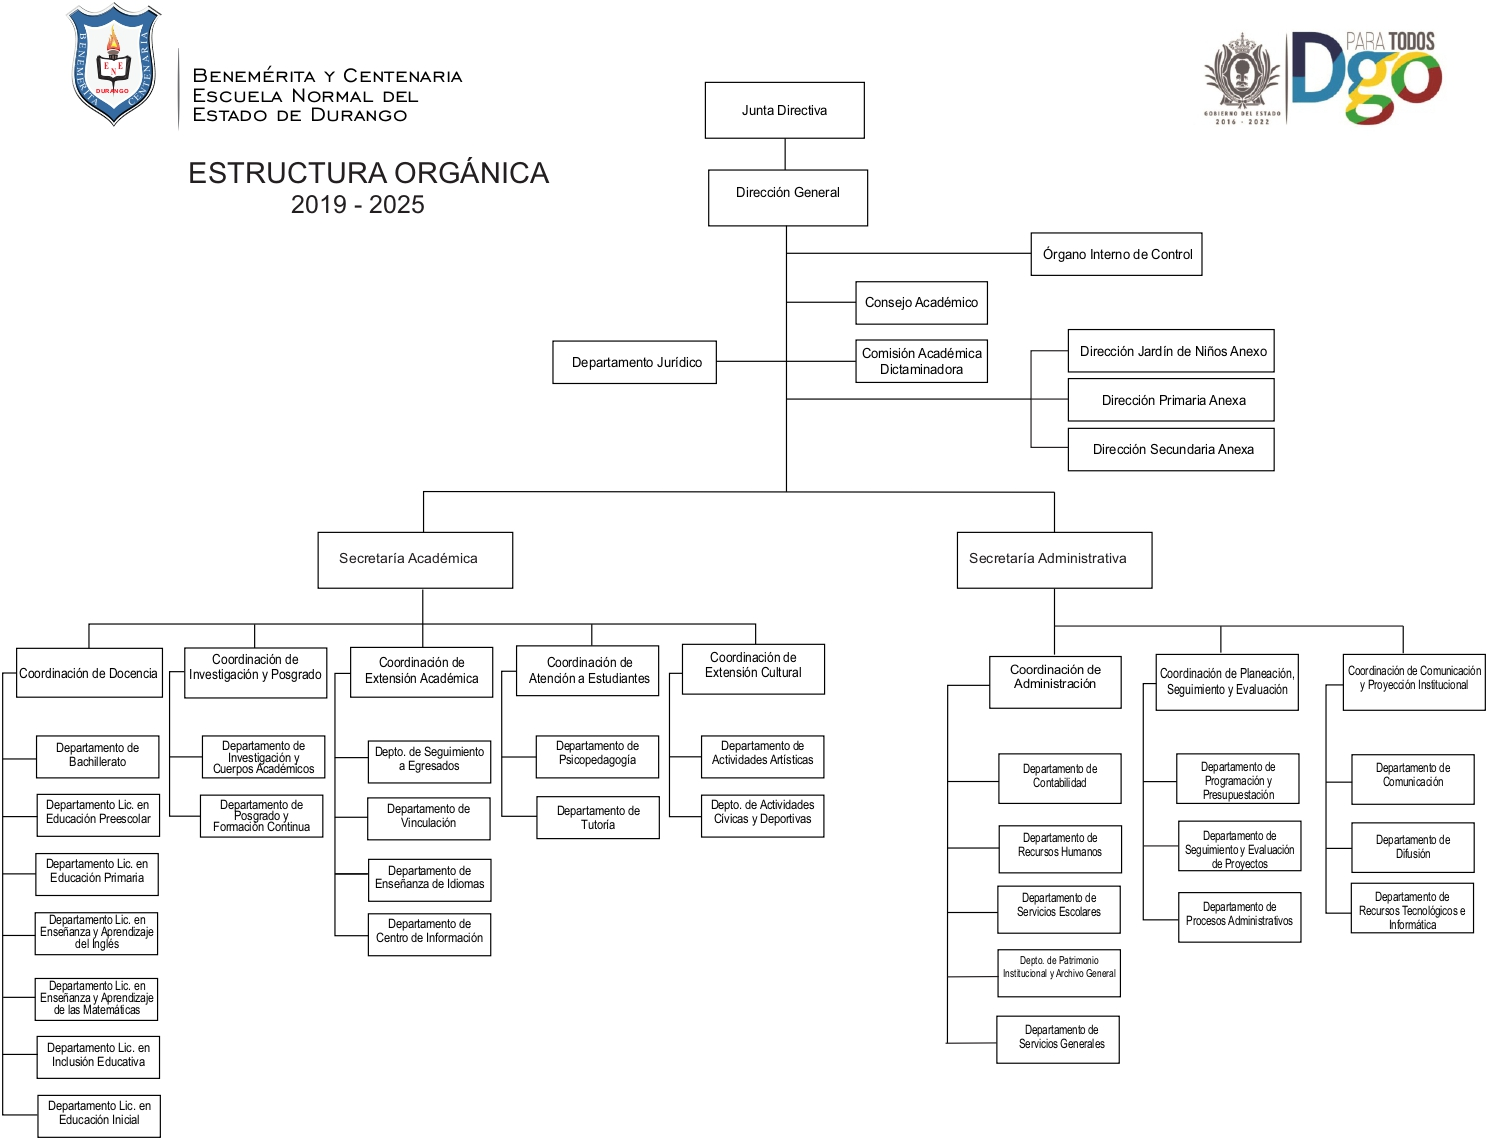 Estructura Orgánica Bycened